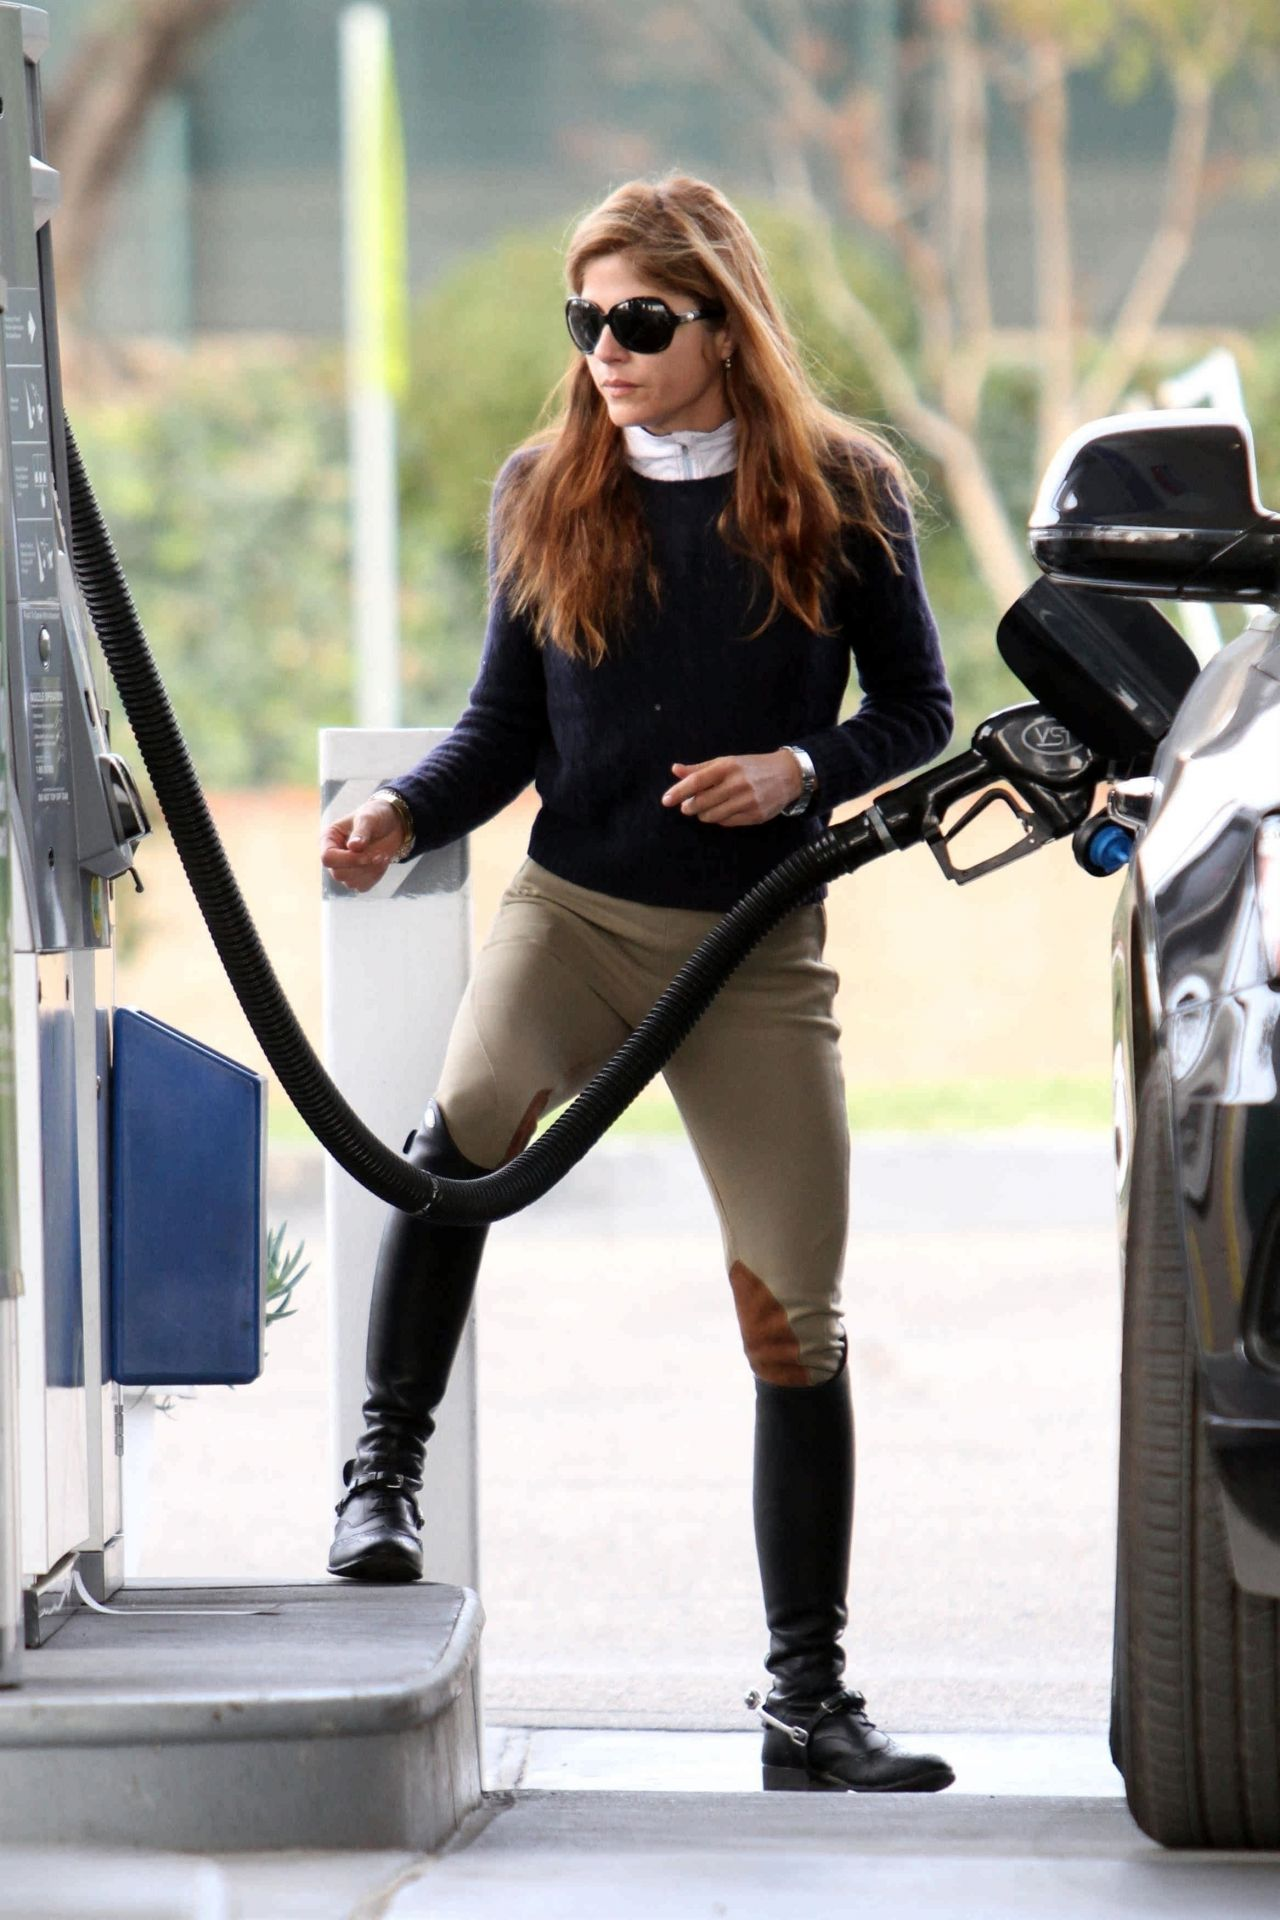 Selma Blair in Riding Outfit Pumping Gas in Los Angeles